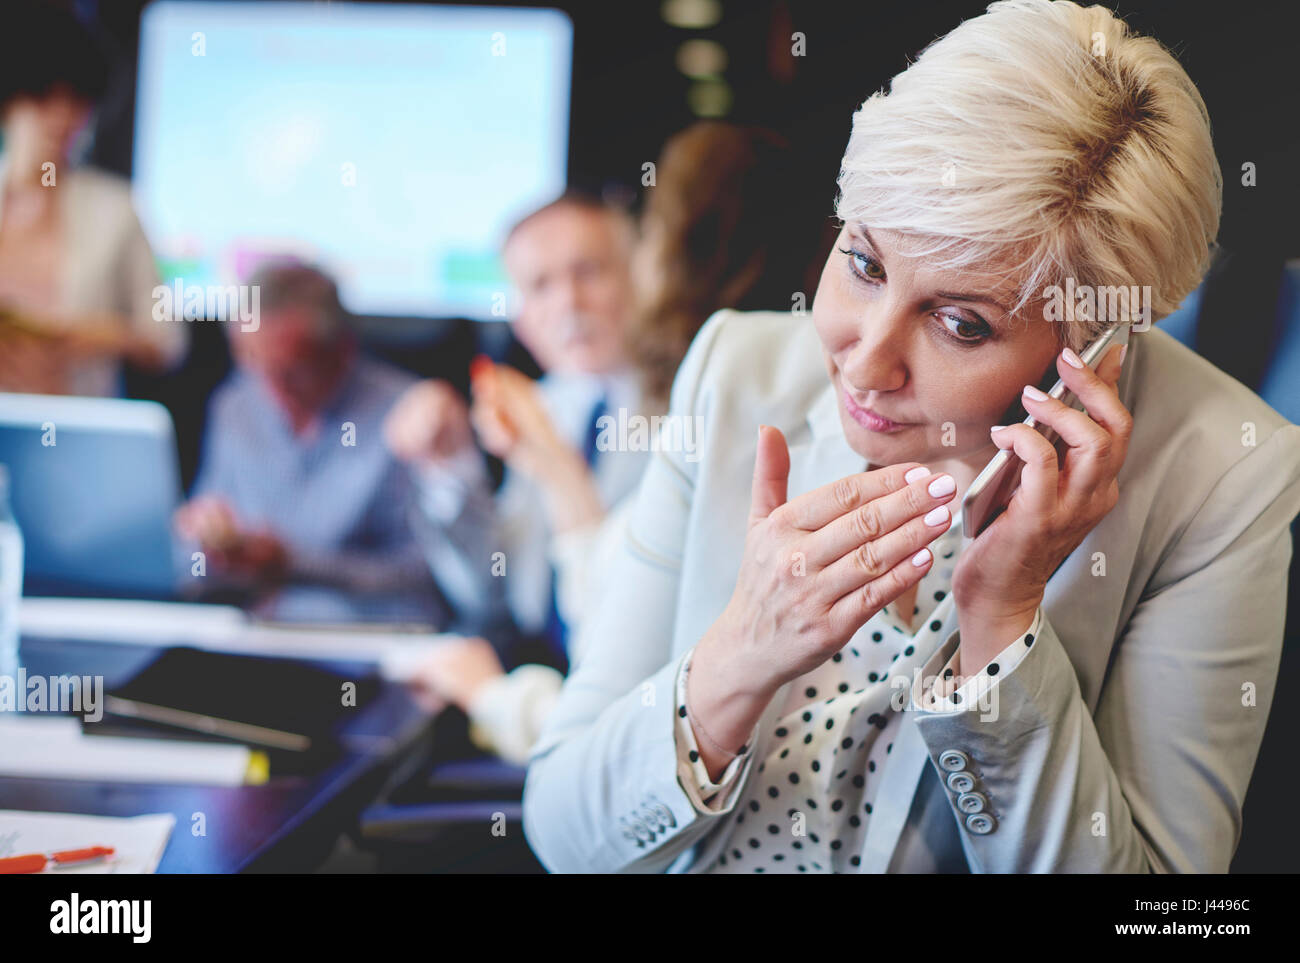 Urgent phone call while having meeting - Stock Image